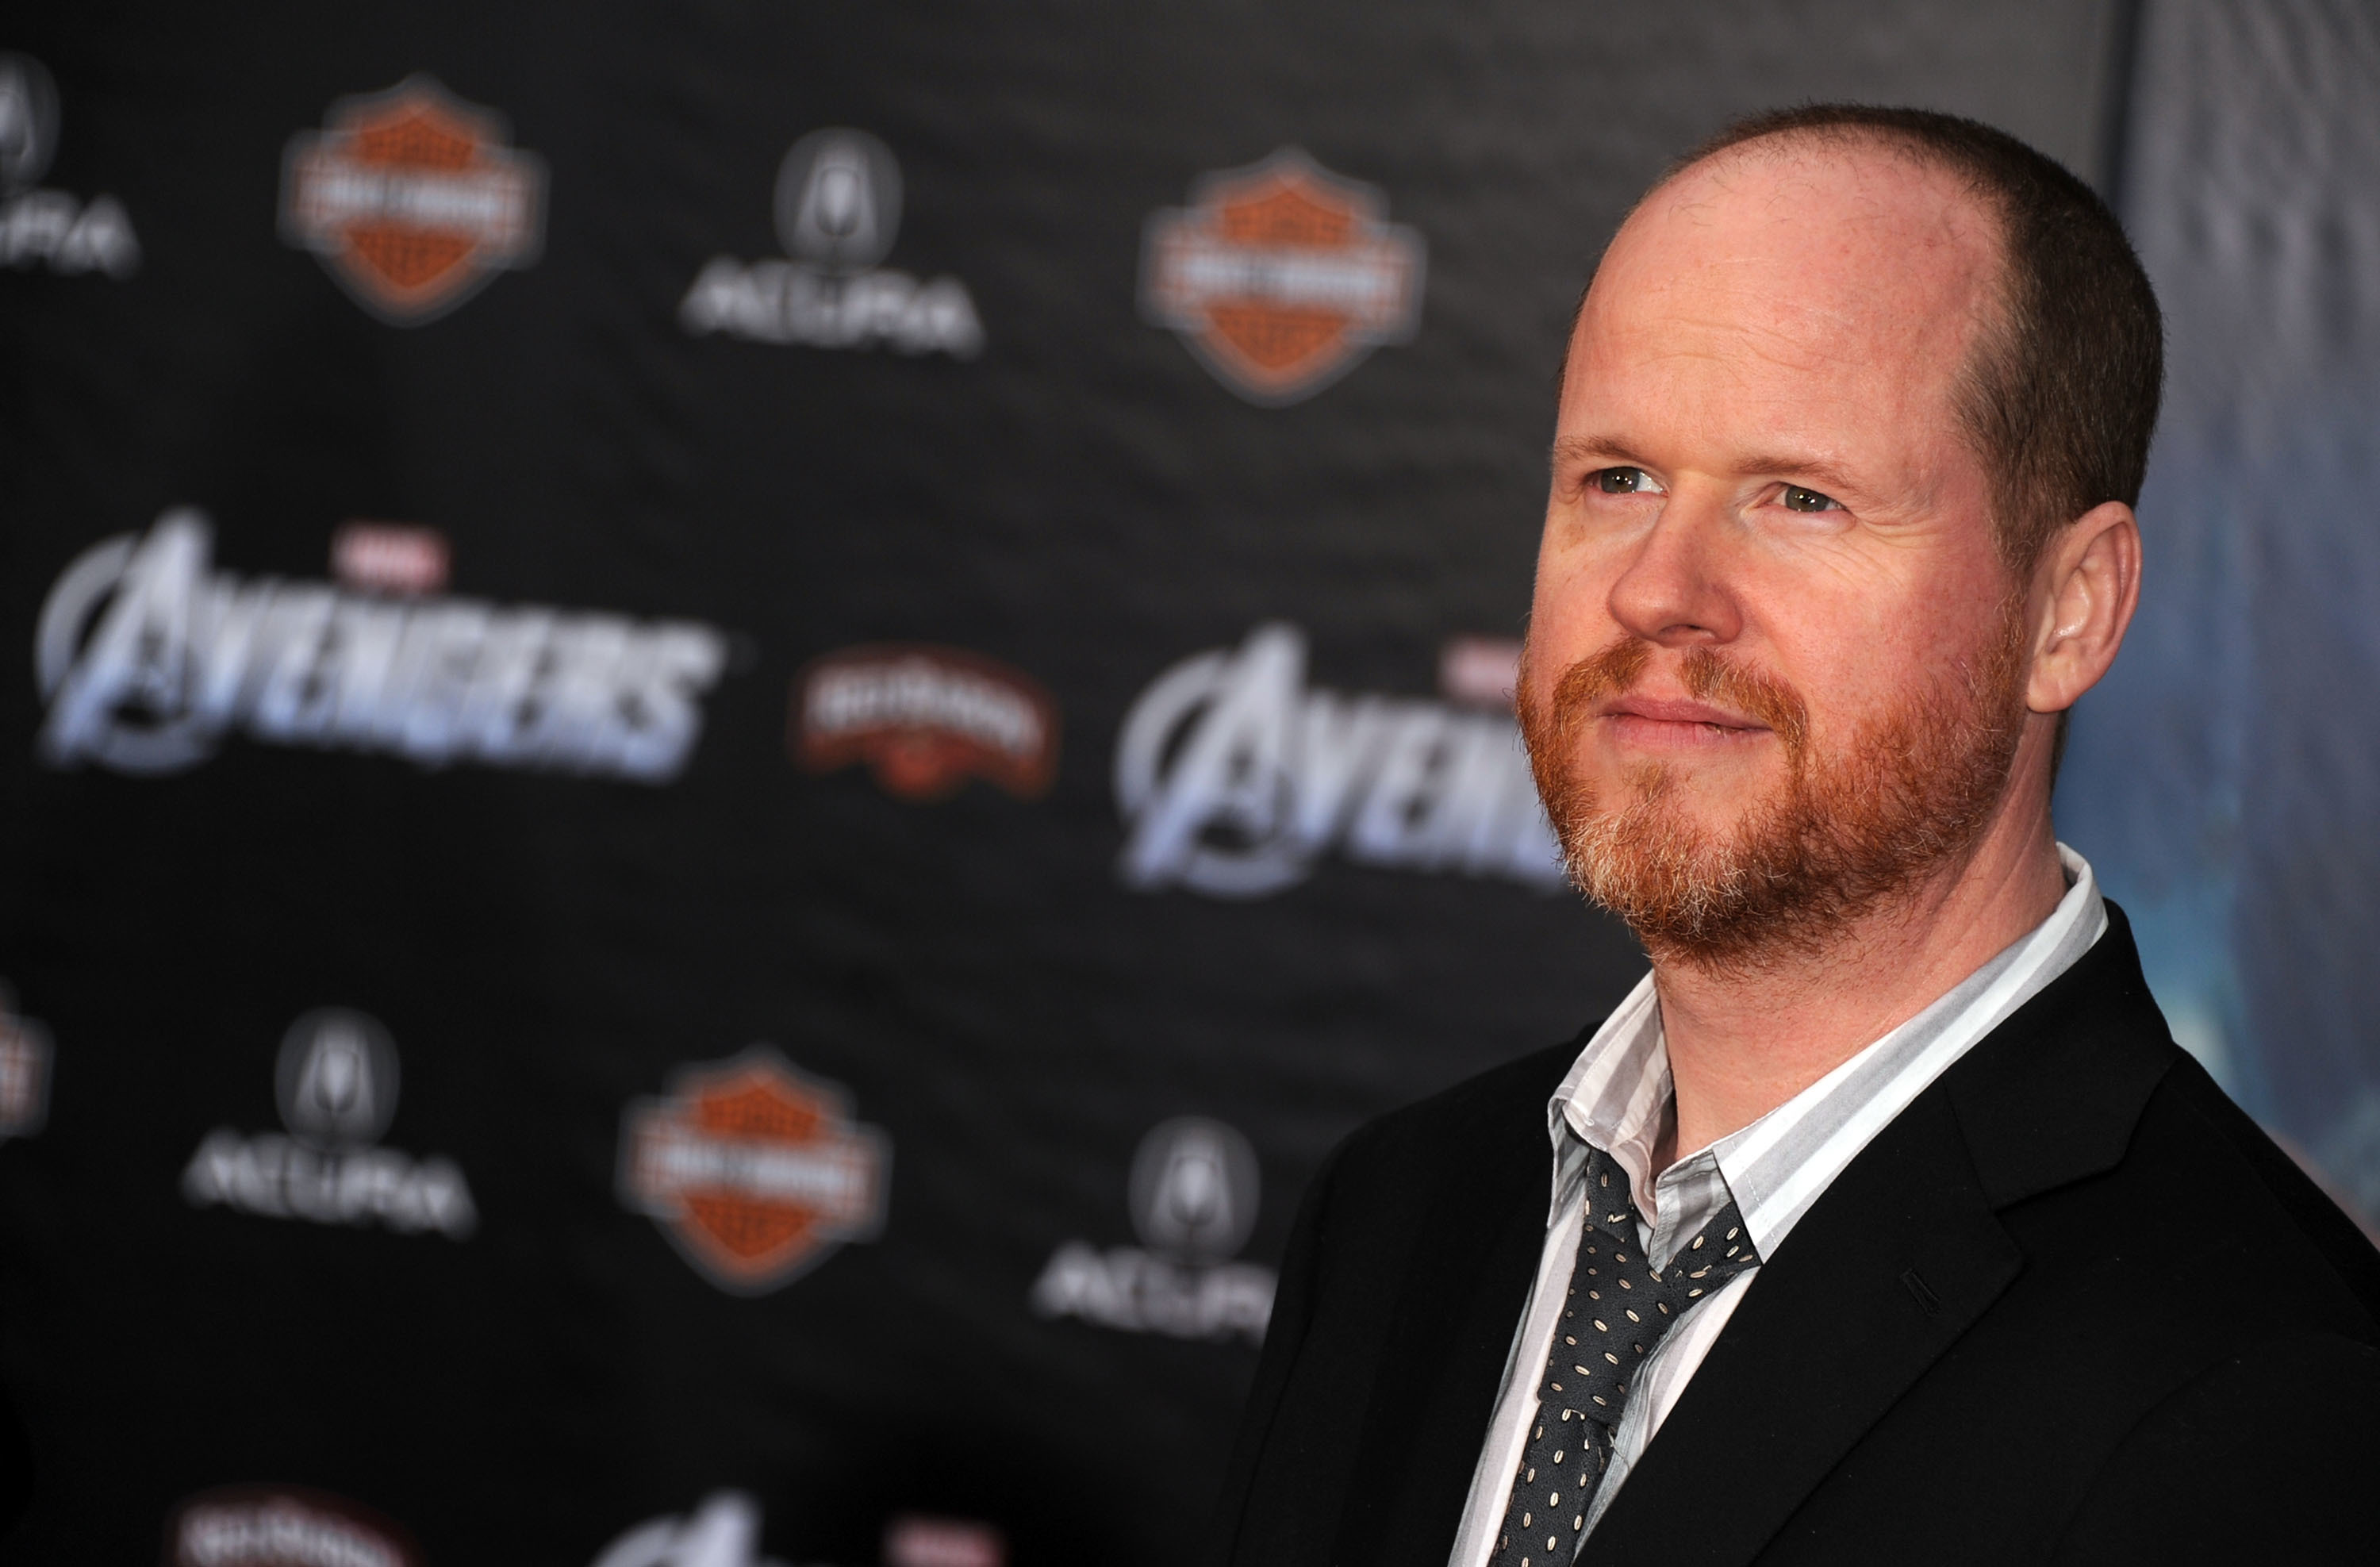 'Batgirl' Movie Coming Soon? 'Avengers' Director Joss Whedon in Talks